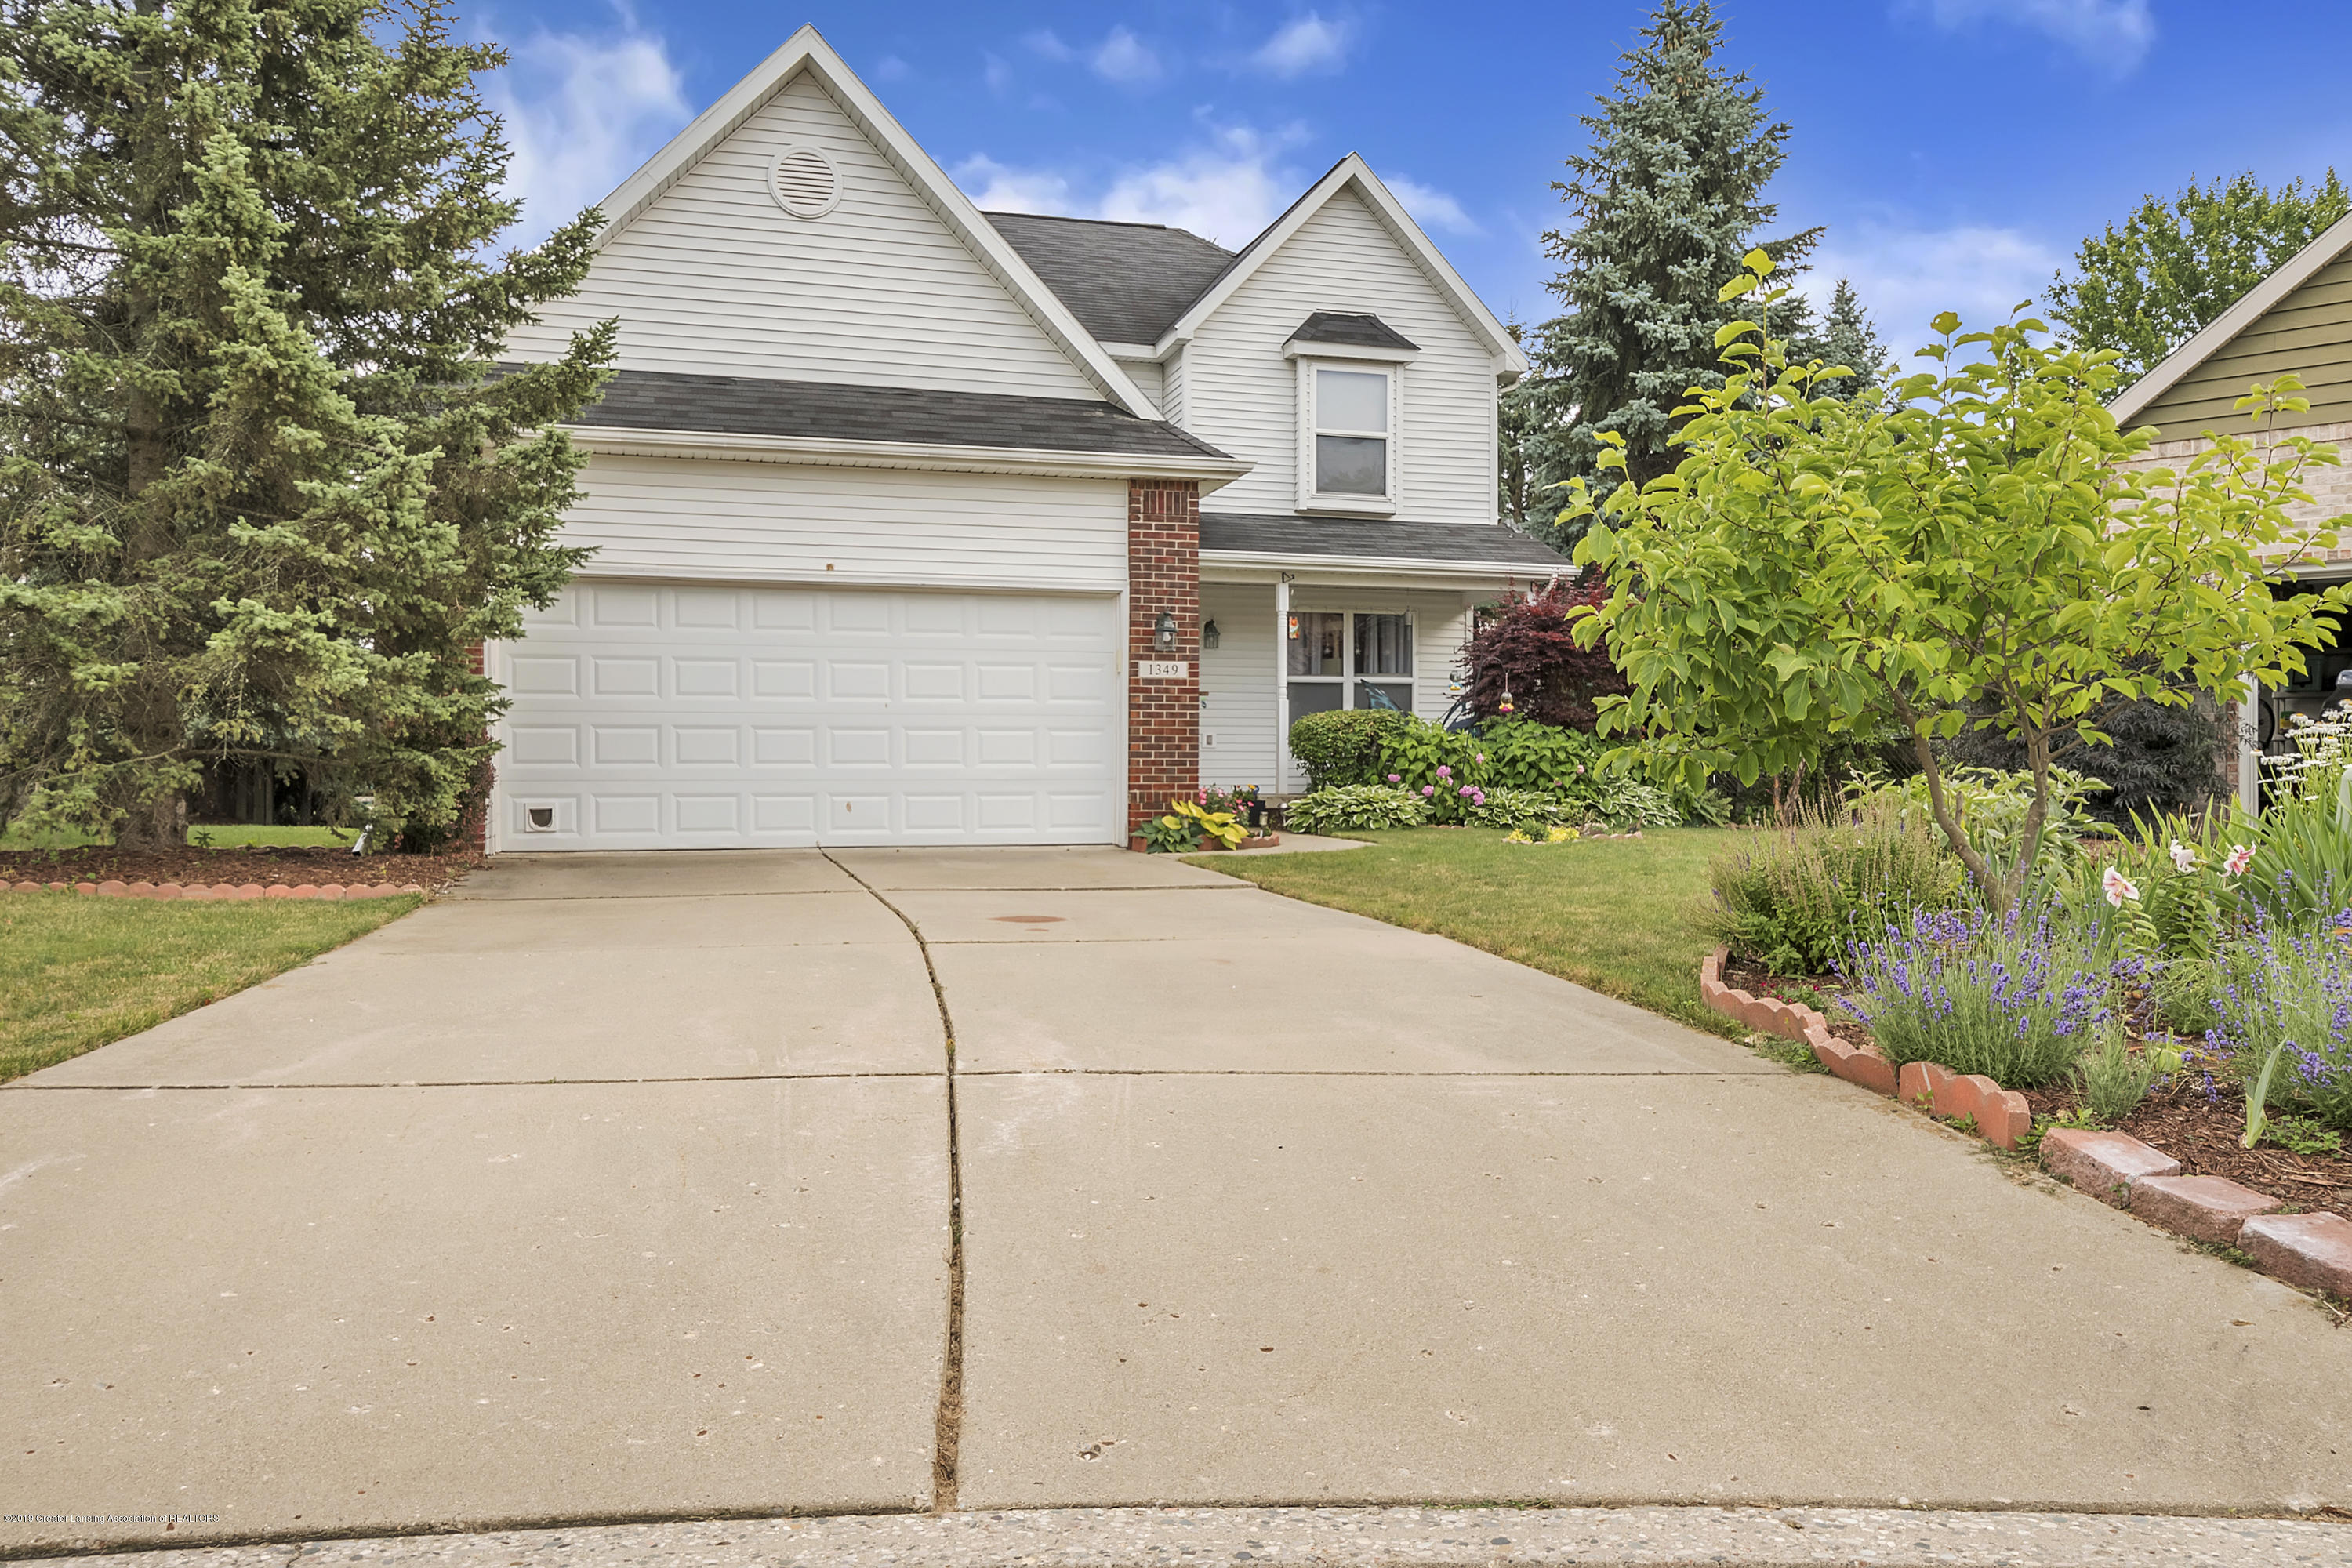 1349 Turtlecreek Cir - 1349-Turtlecreek-Cir-East-Lansing-window - 2